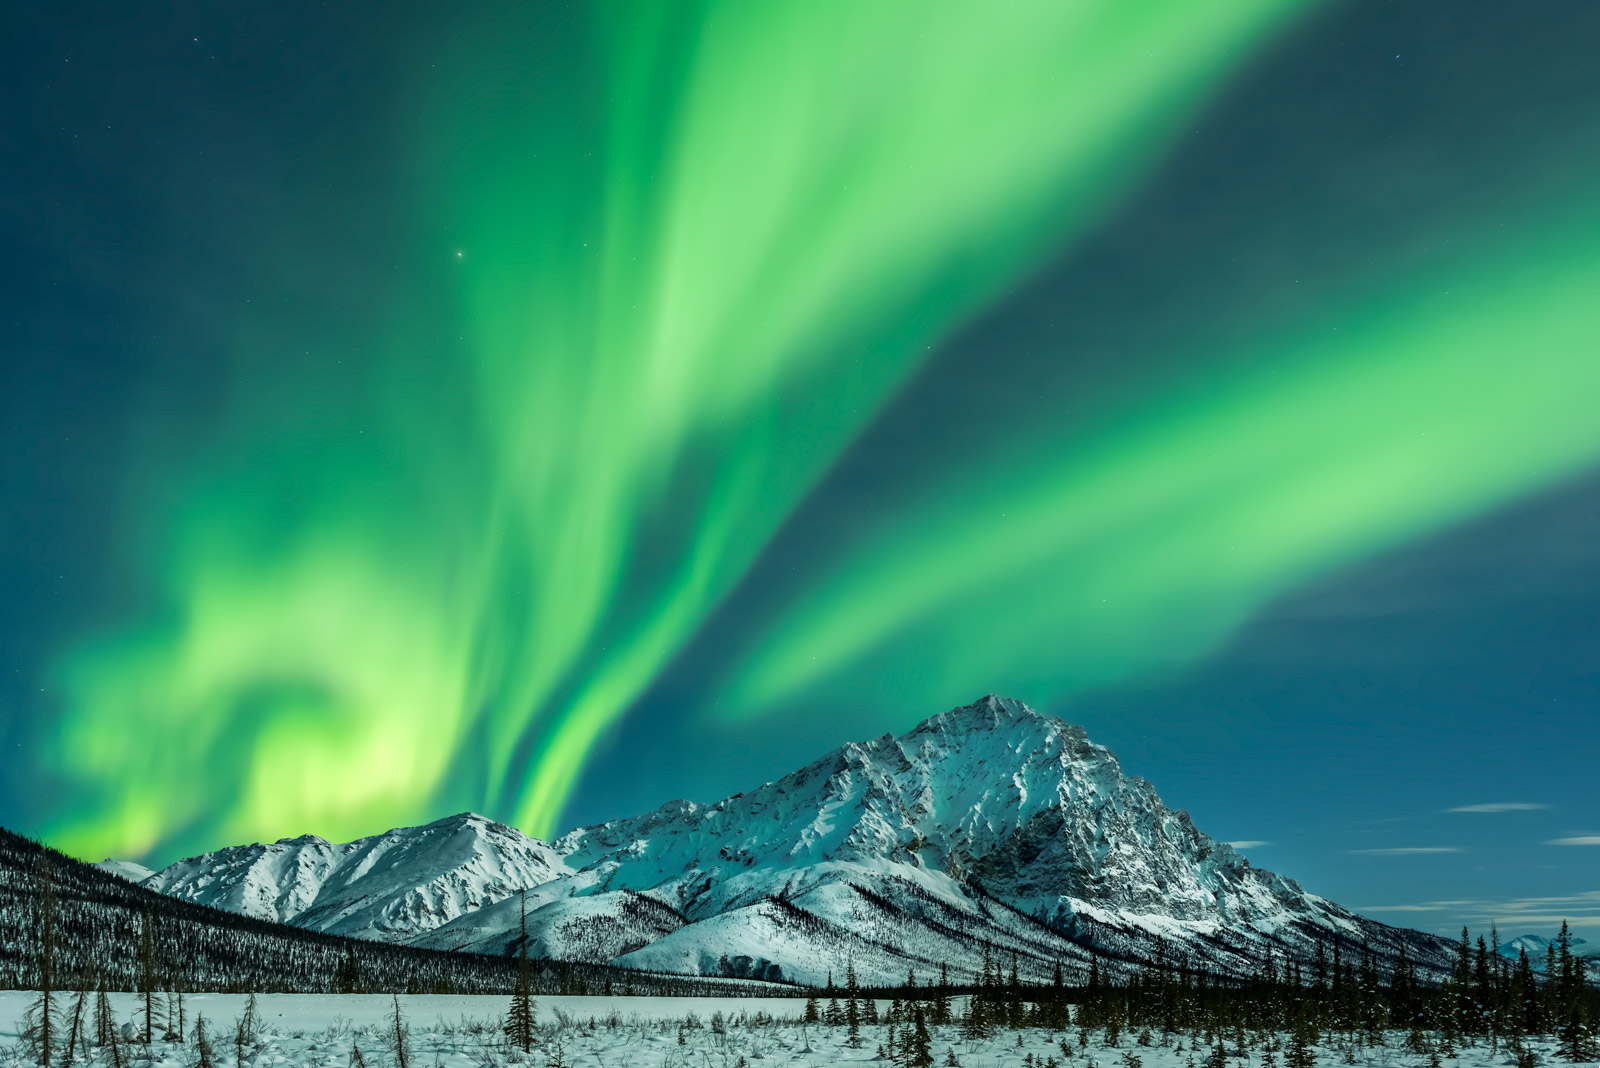 A Limited Edition, Fine Art photograph of the Northern Lights creating a stunning scene over the snow covered mountains of the...